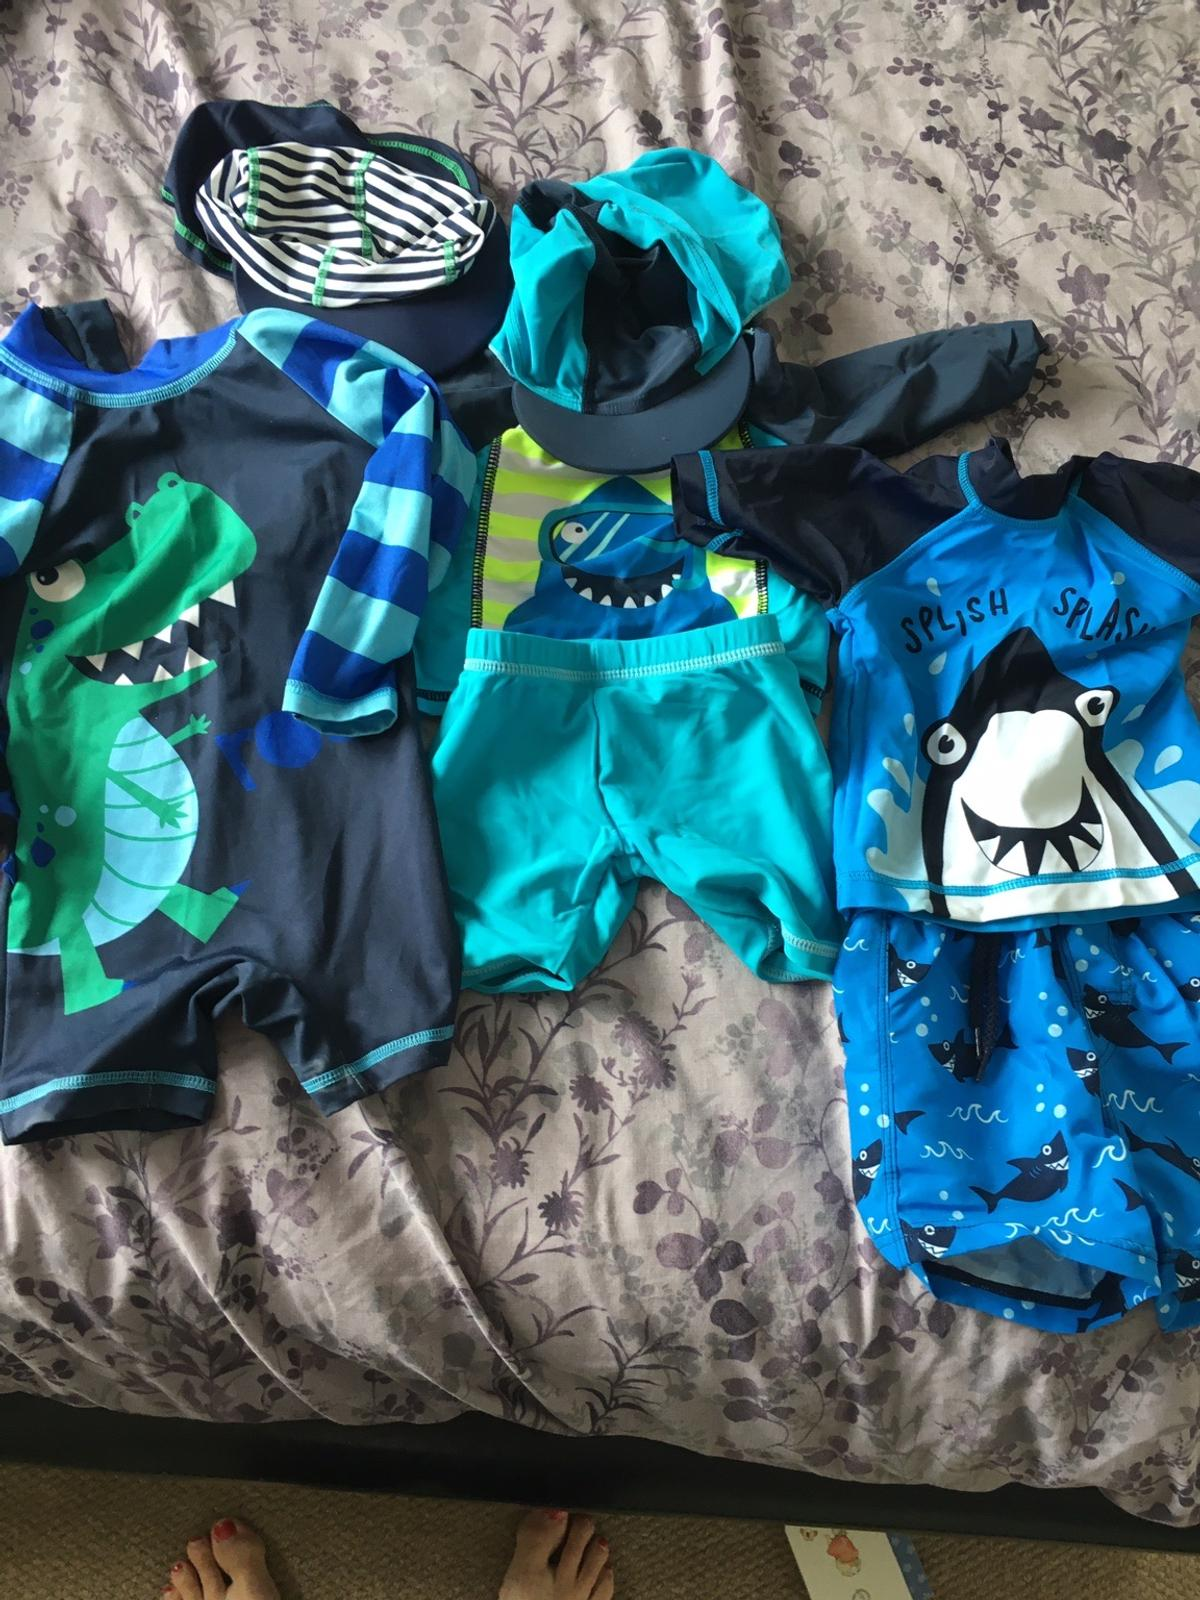 One all in one swimsuit (long sleeved) Two shorts and top Two swim hats